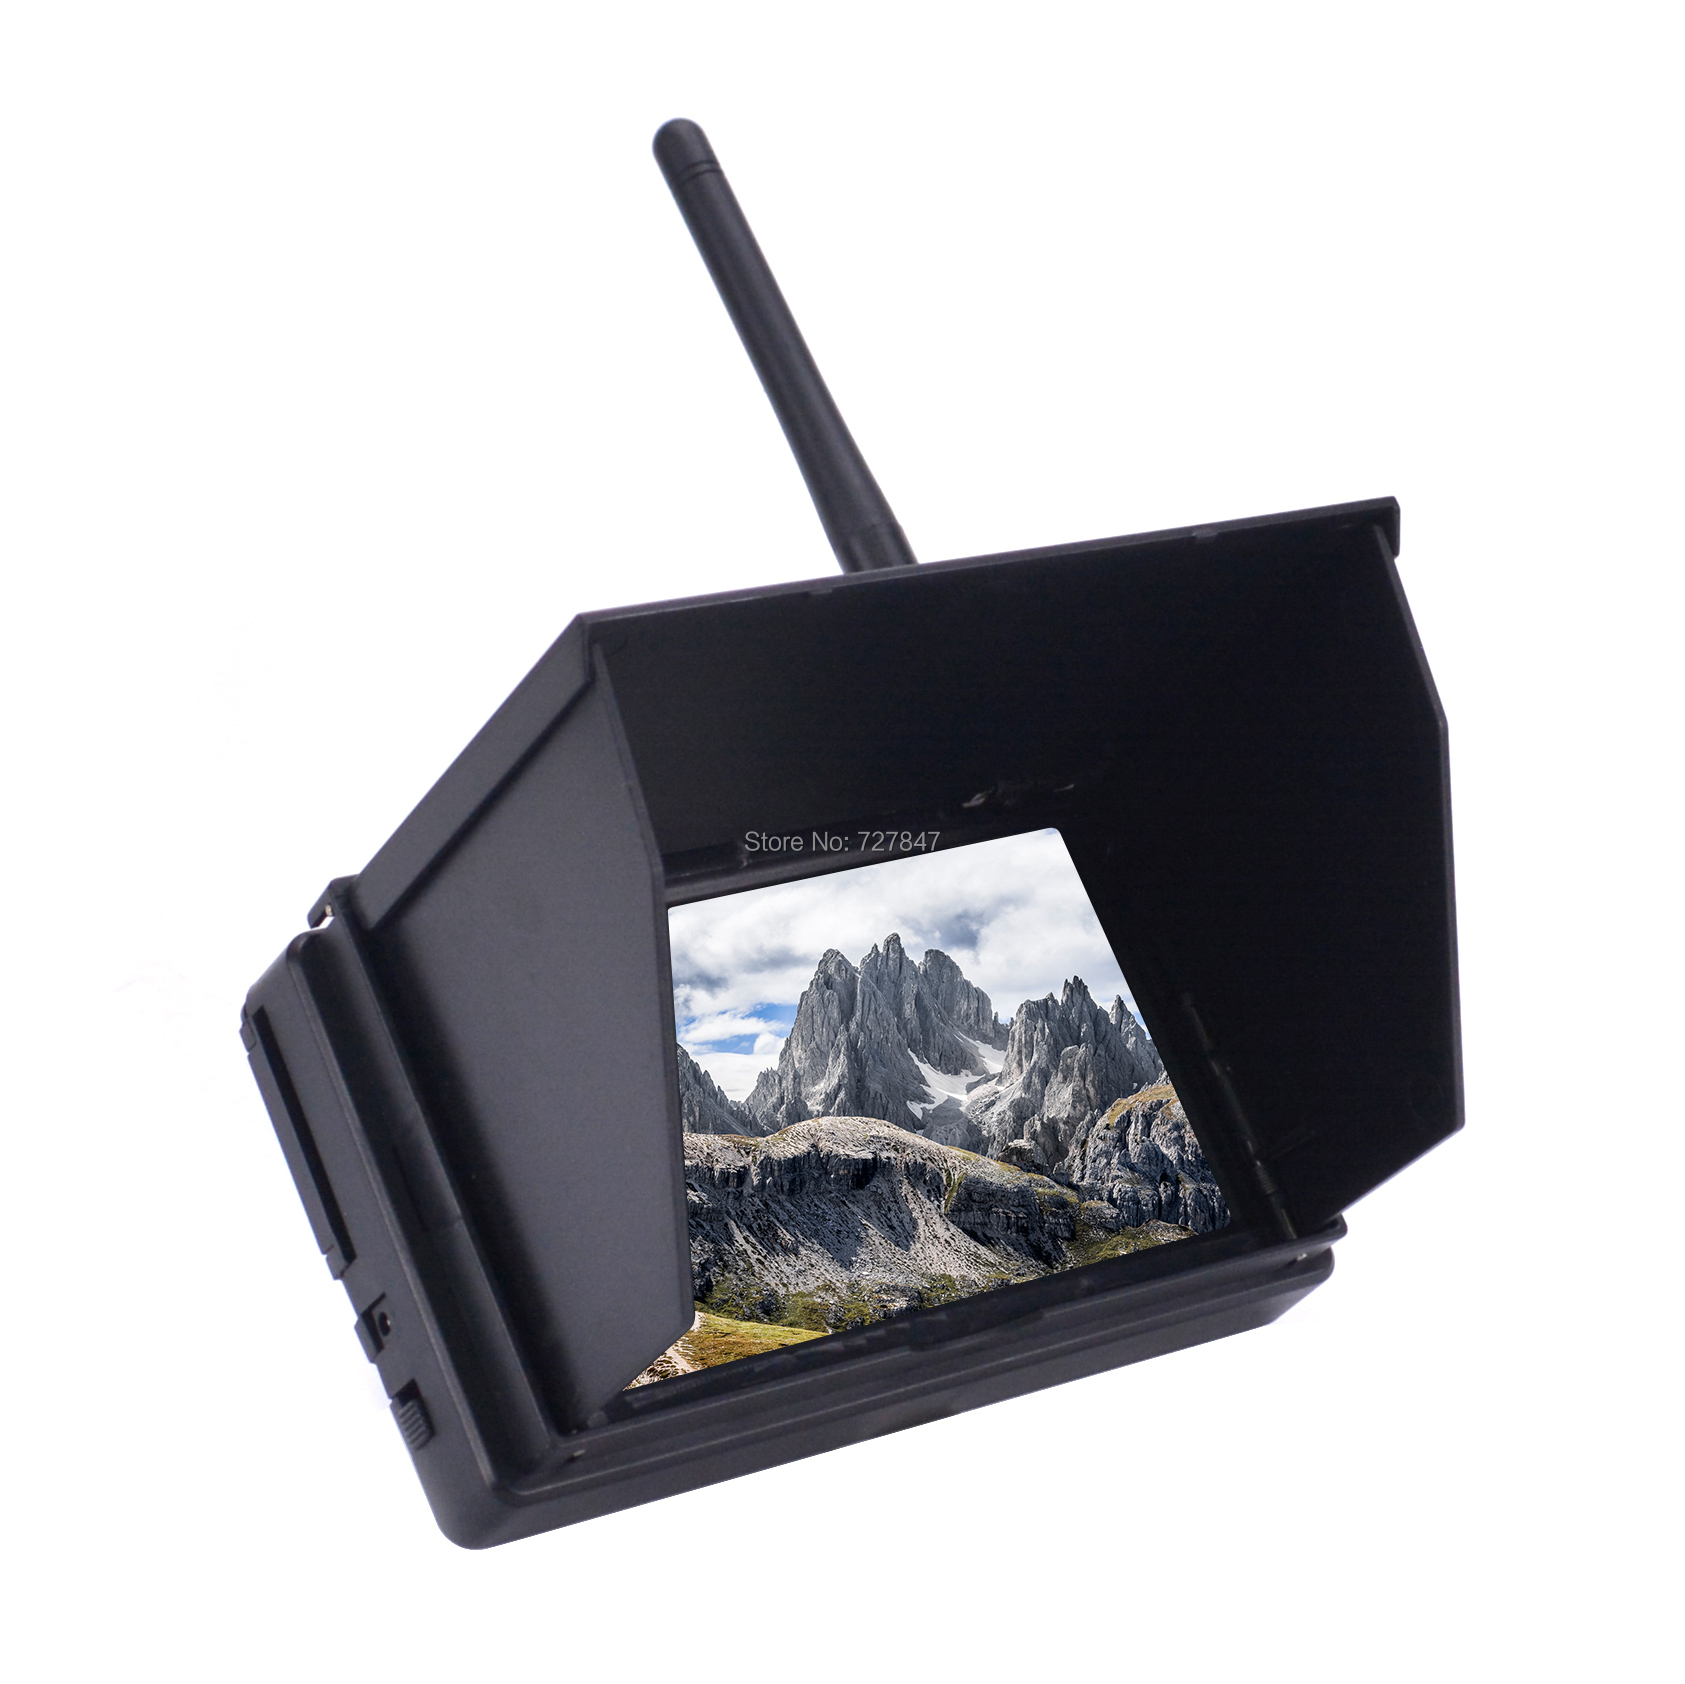 NEW 5.8G 48CH 4.3 Inch LCD 480x22 pixels 16:9 NTSC / PAL FPV Reciever Monitor Auto Search With OSD Build-in Battery